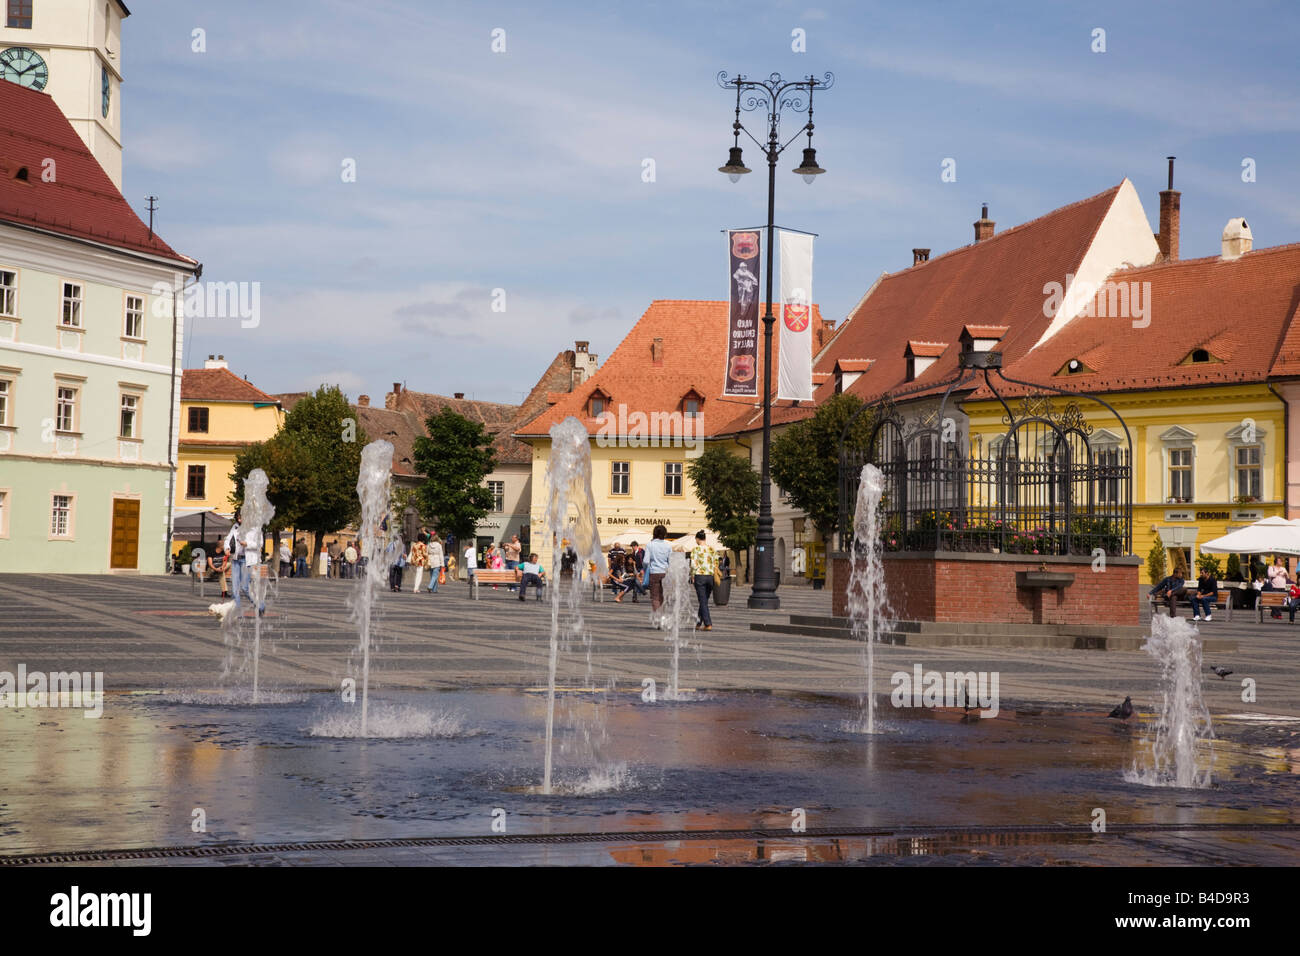 Sibiu Transylvania Romania Europe Old buildings and fountains in Piata Mare in historic city centre of Hermannstadt - Stock Image